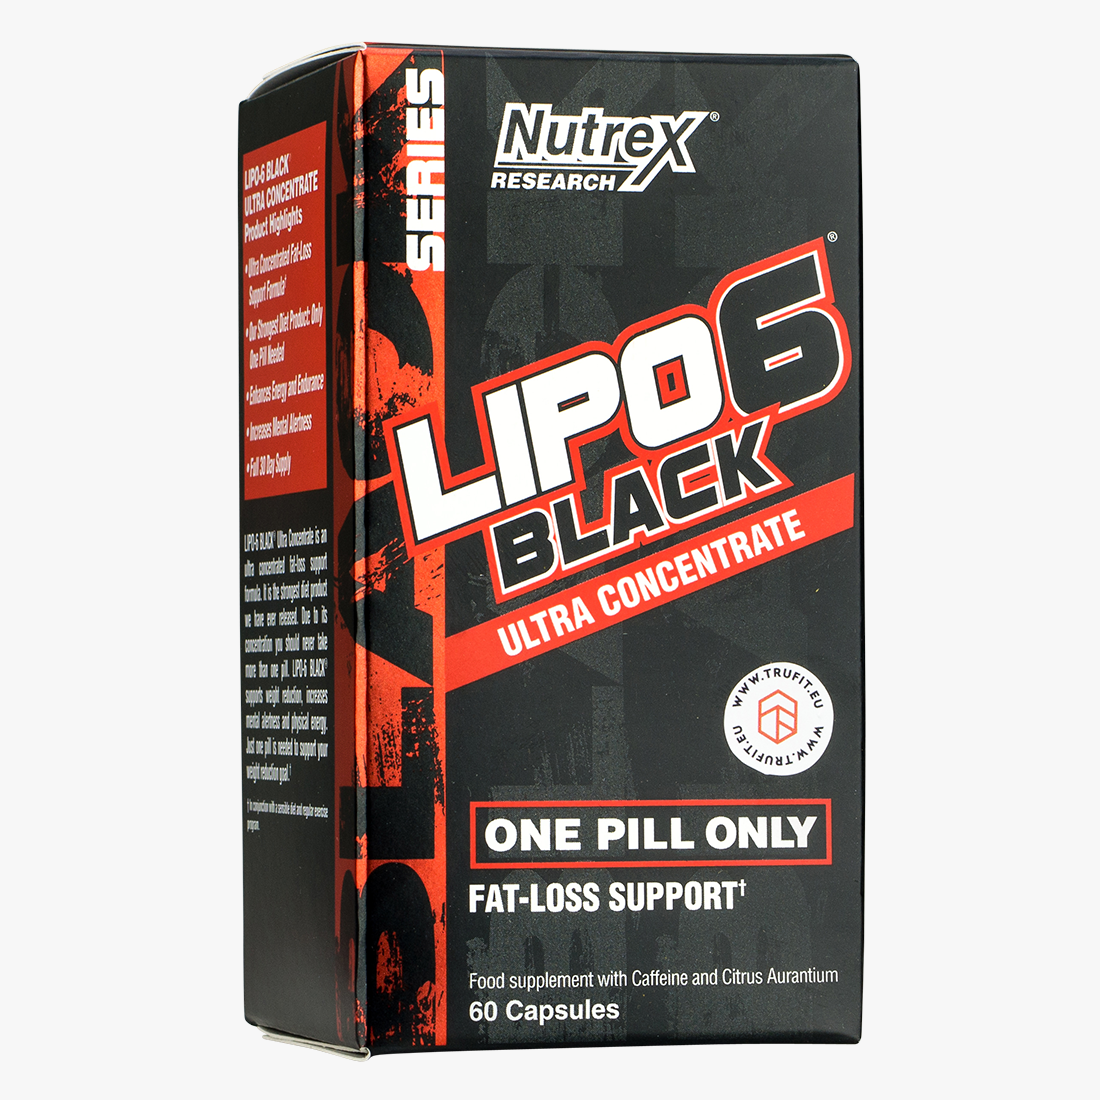 Nutrex Research - Lipo 6 Black Ultra Concentrated